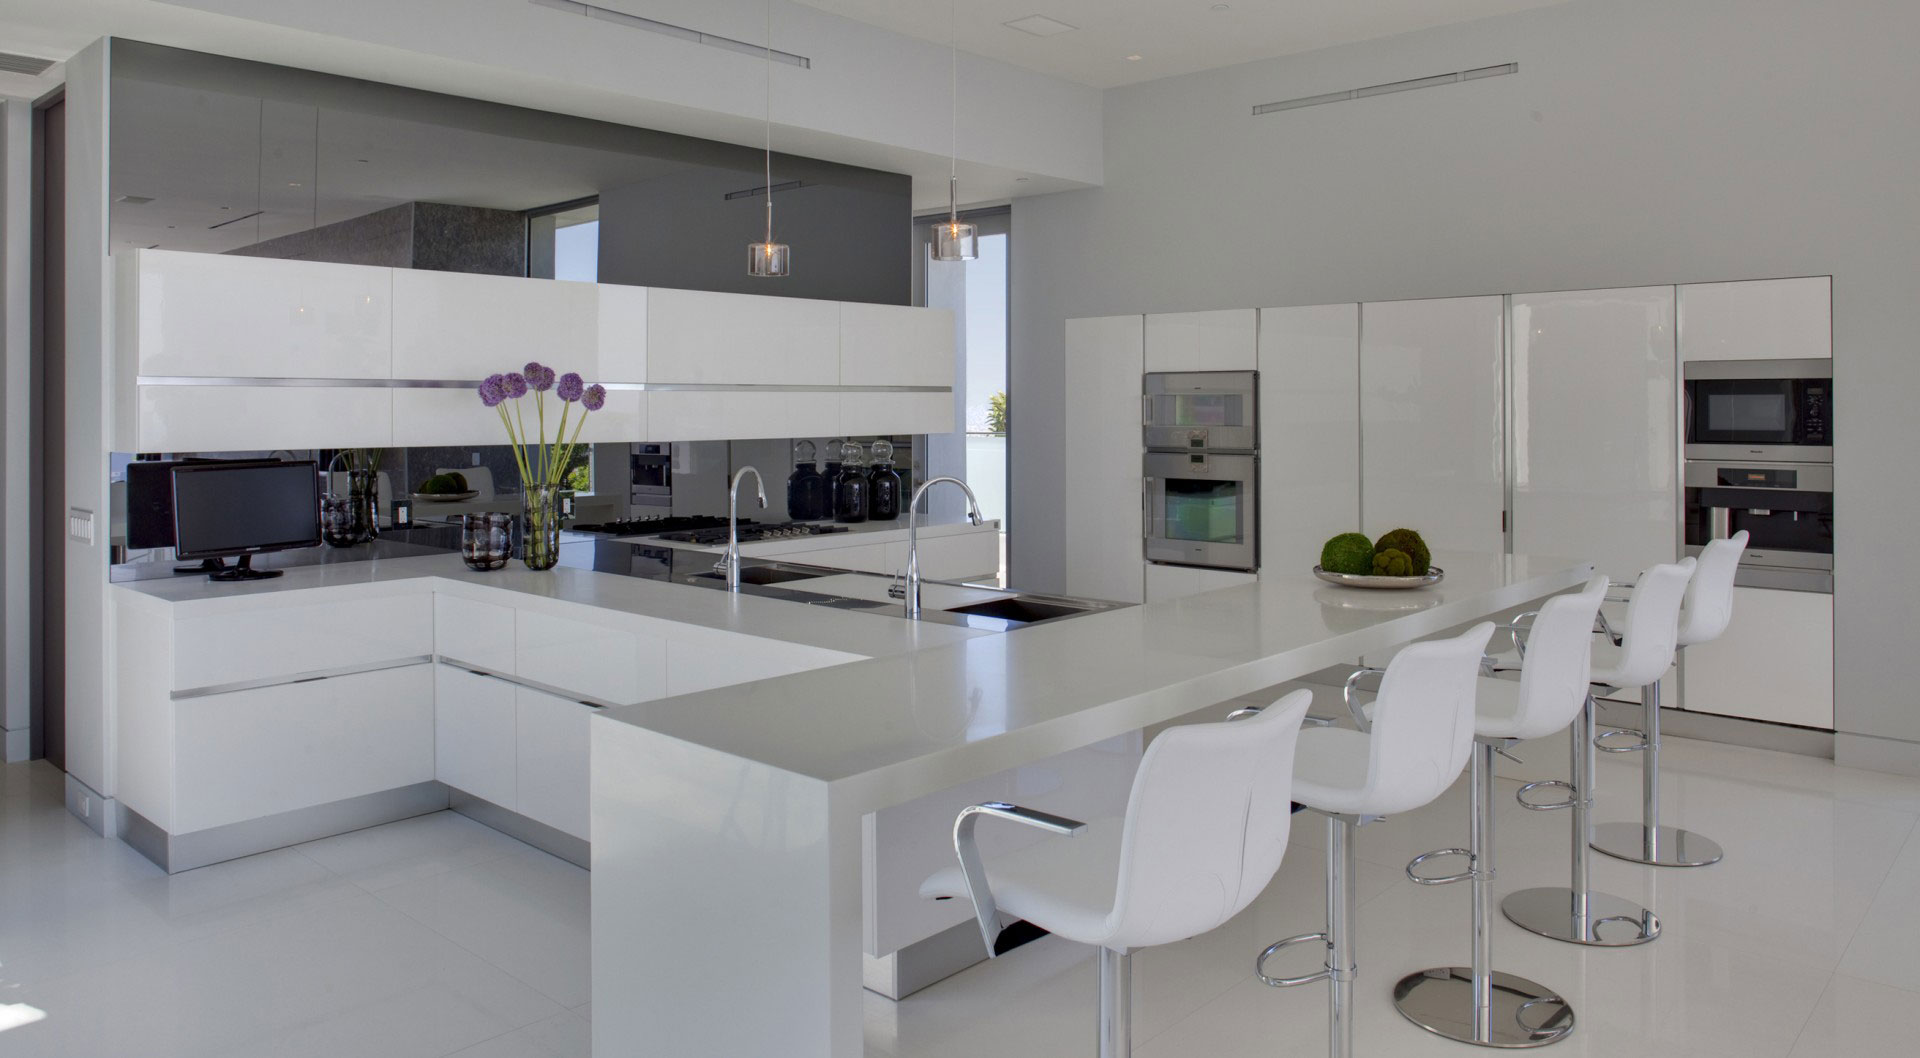 White Kitchen Breakfast Bar White Kitchen Breakfast Bar Stools Tanager Residence In